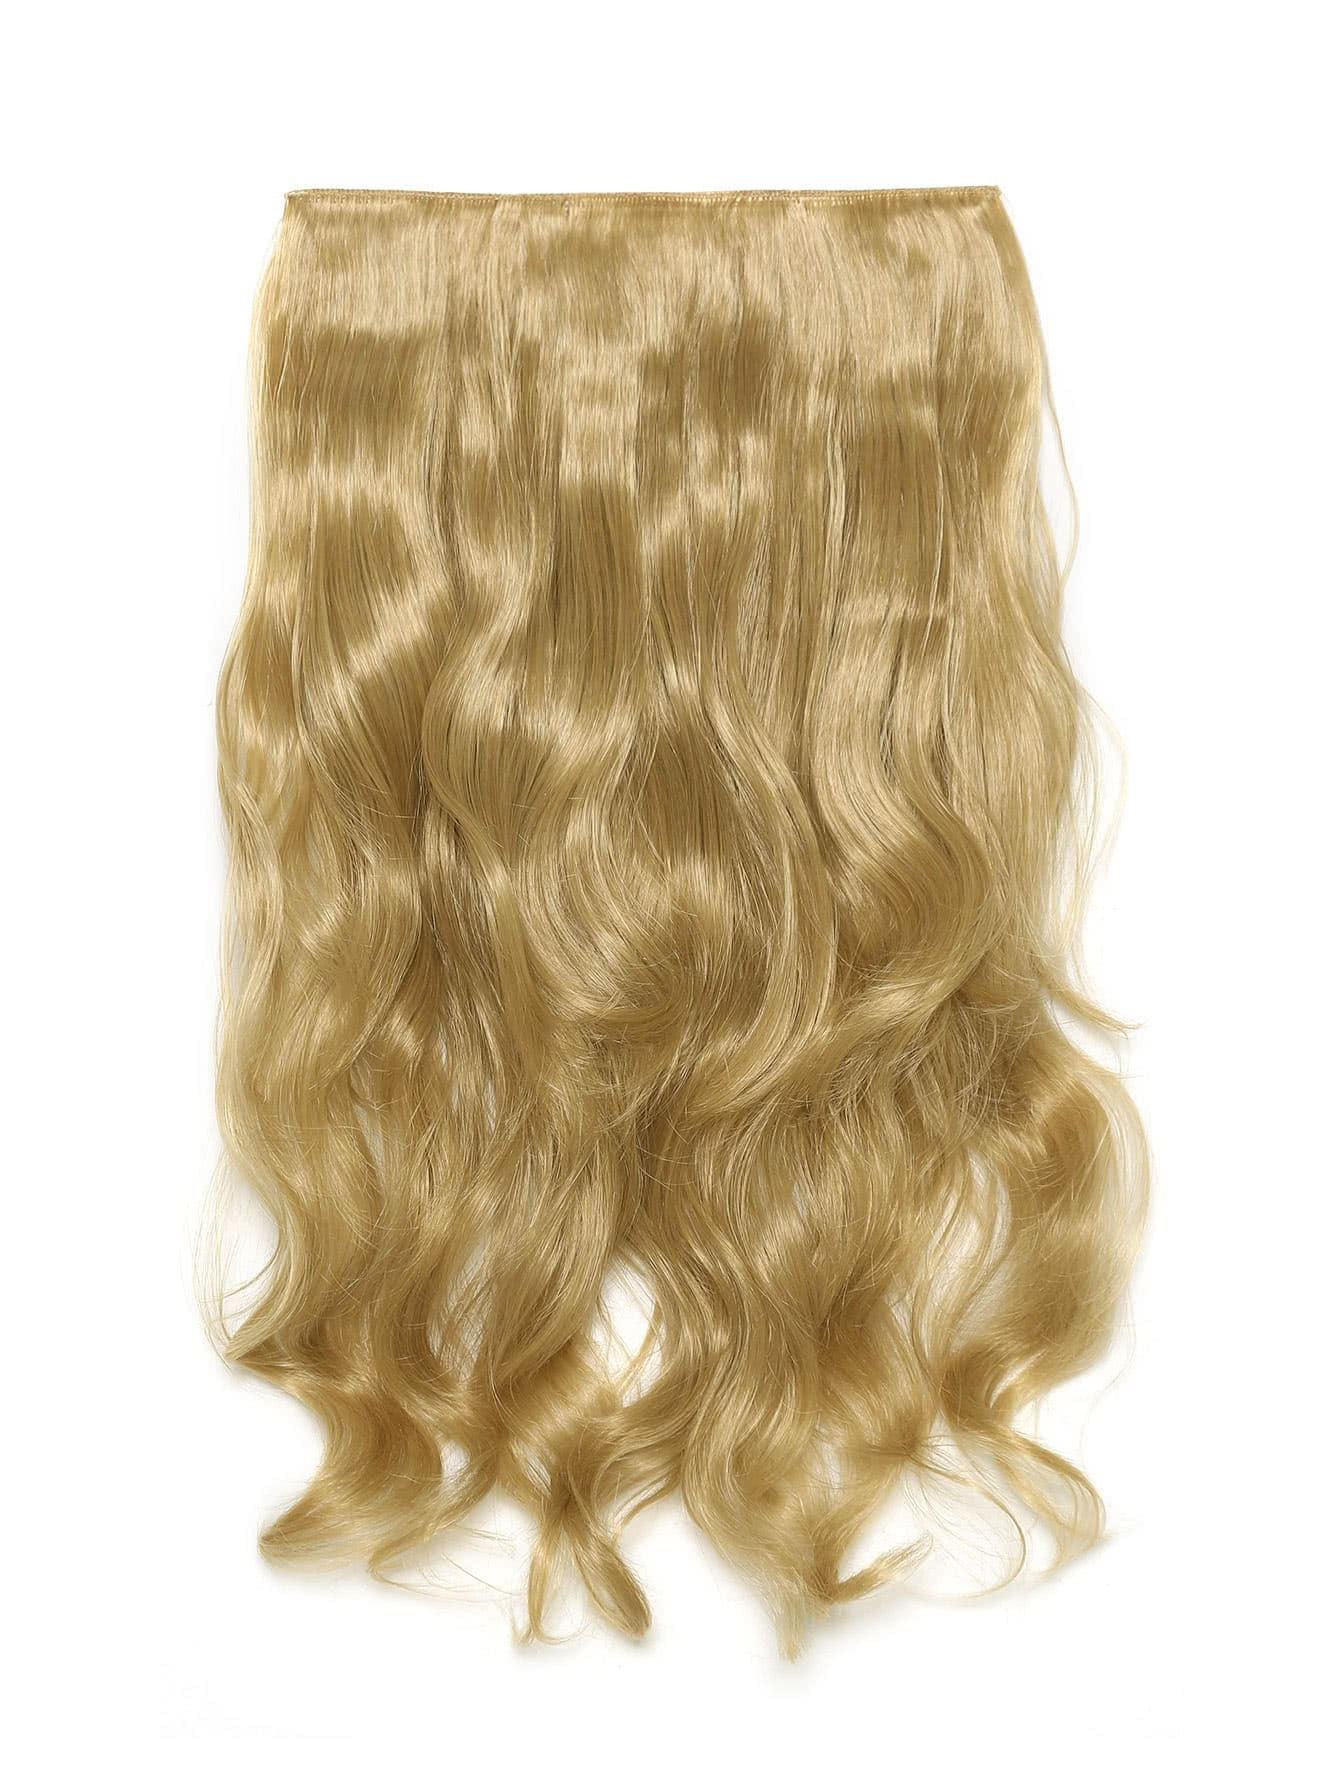 Golden Blonde Clip In Soft Wave Long Hair Extension light blonde clip in soft wave hair extension 5pcs